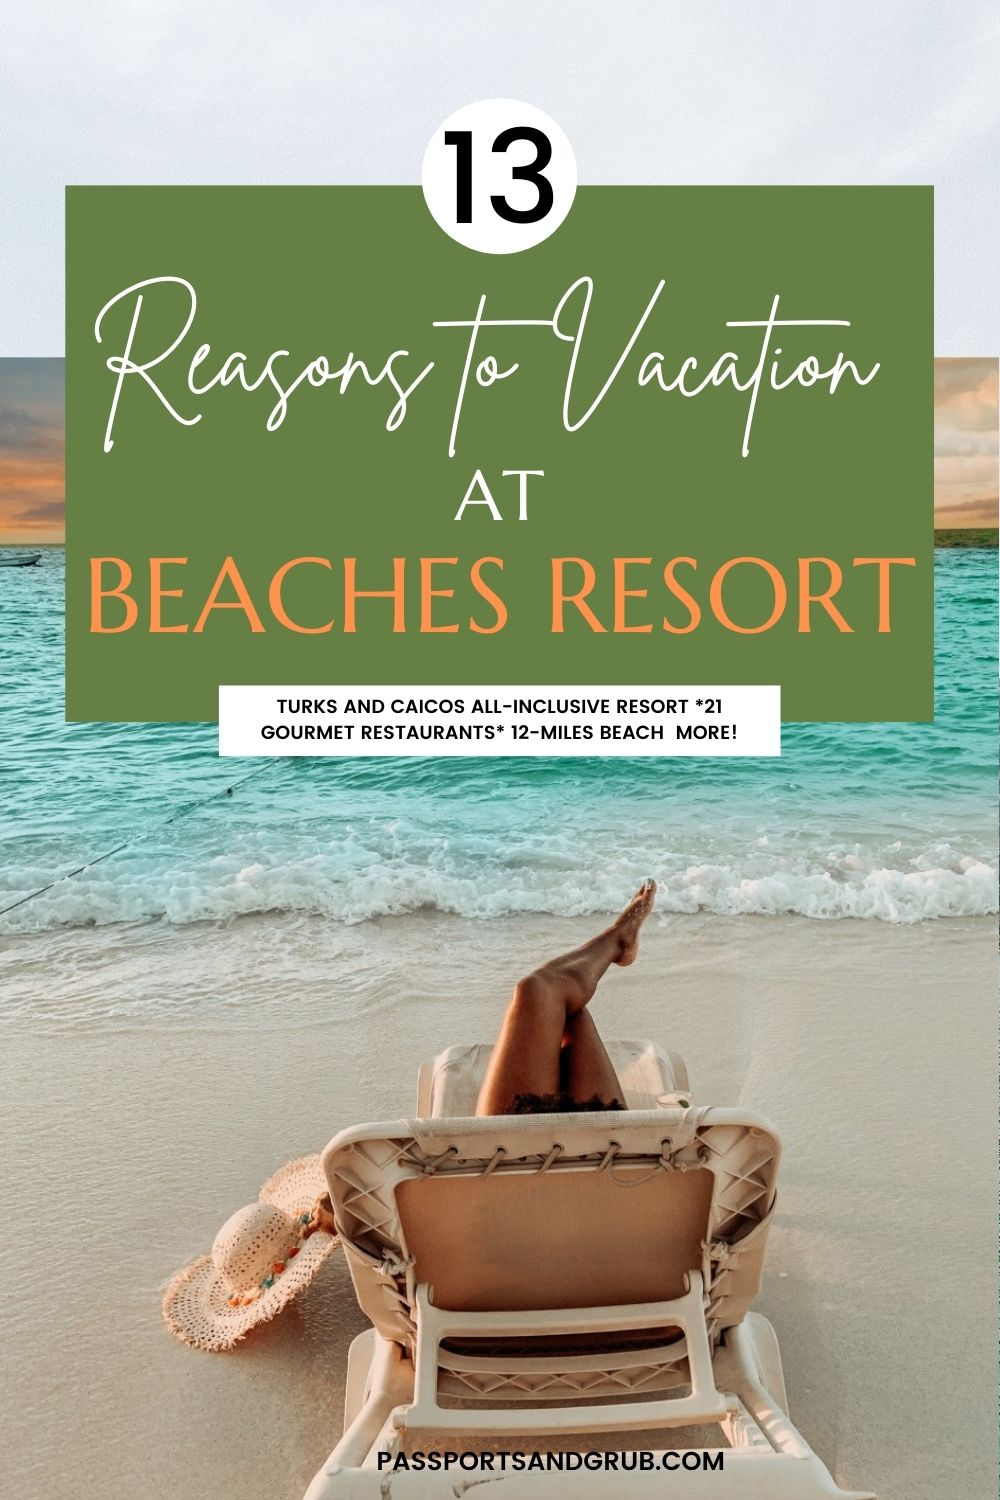 Beches Resort in Turks and caicos